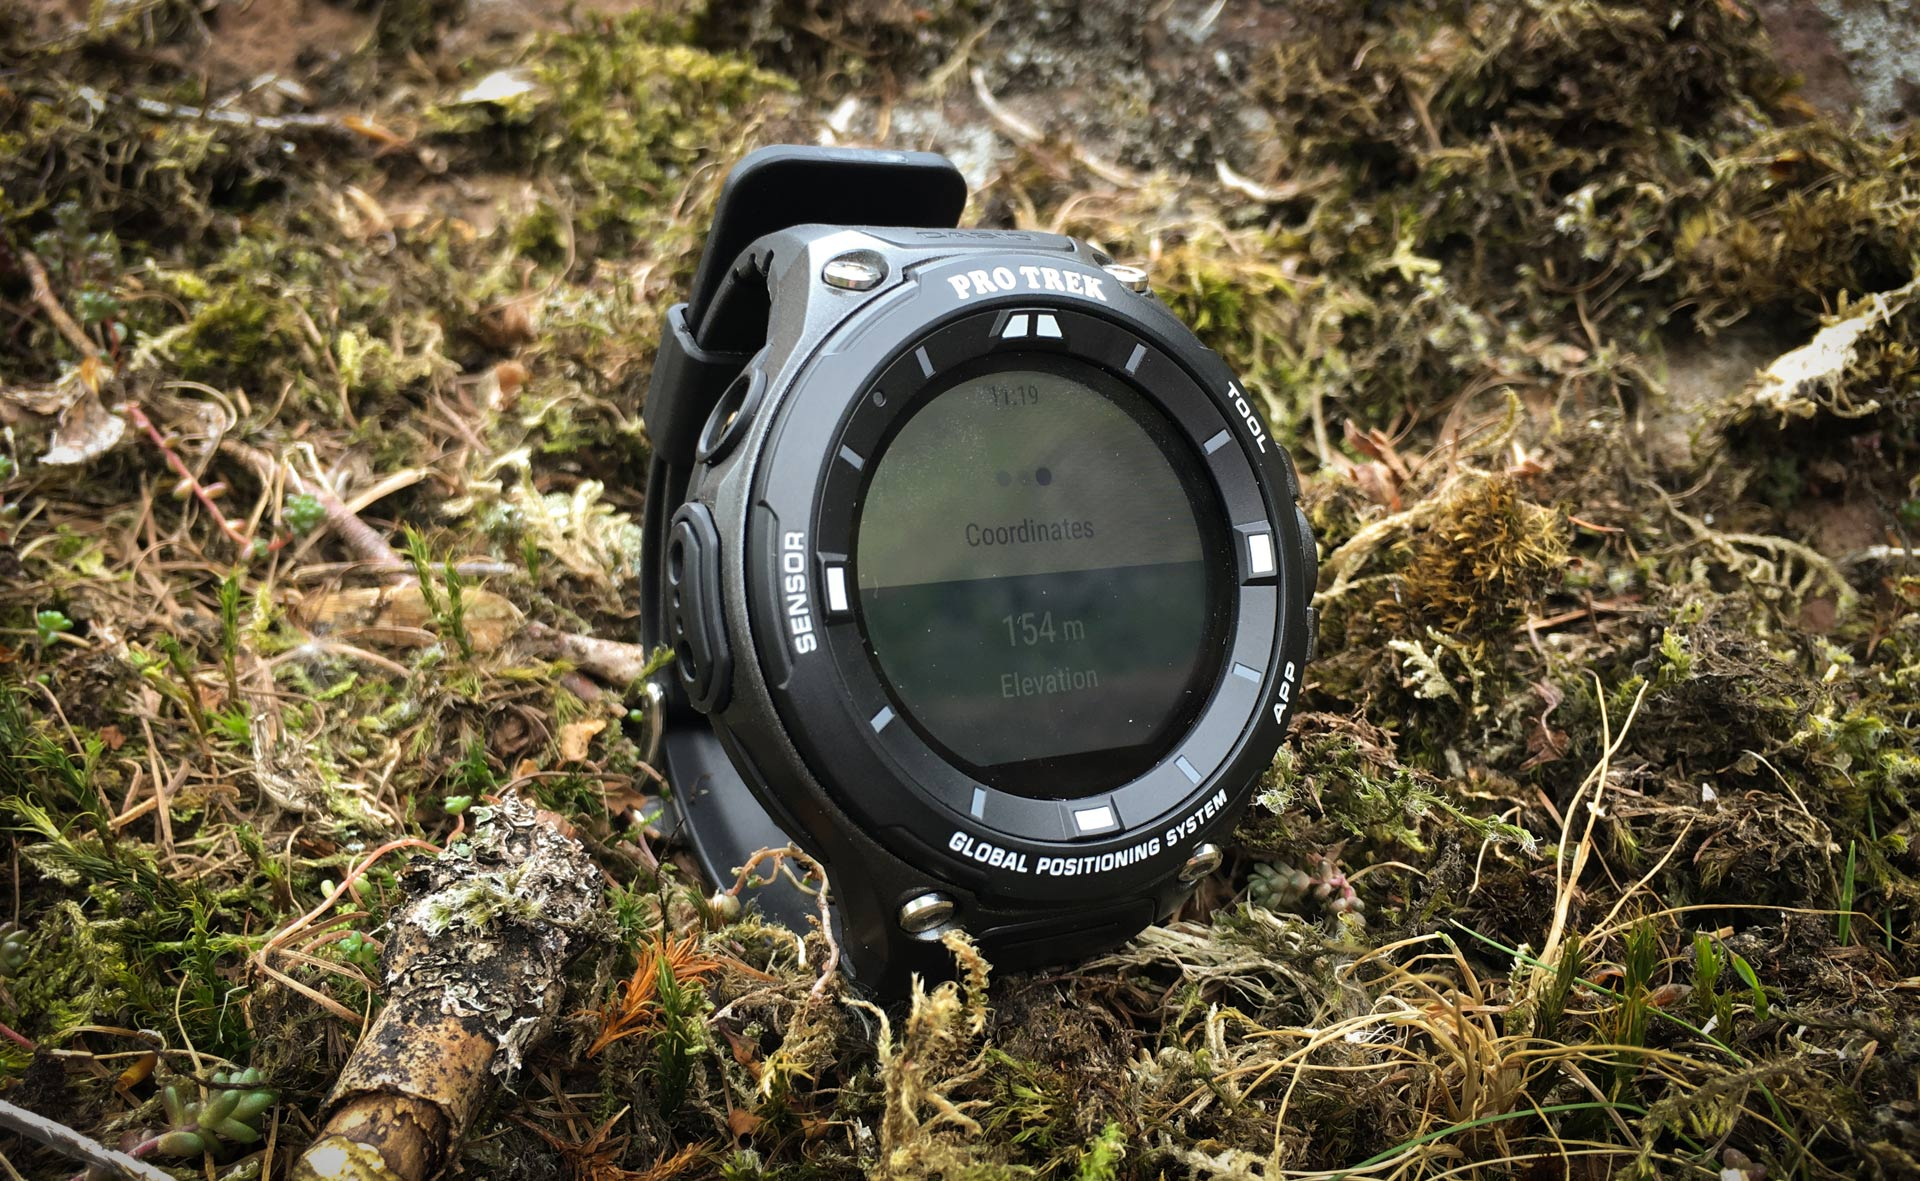 Casio Pro Trek outdoors smartwatch review